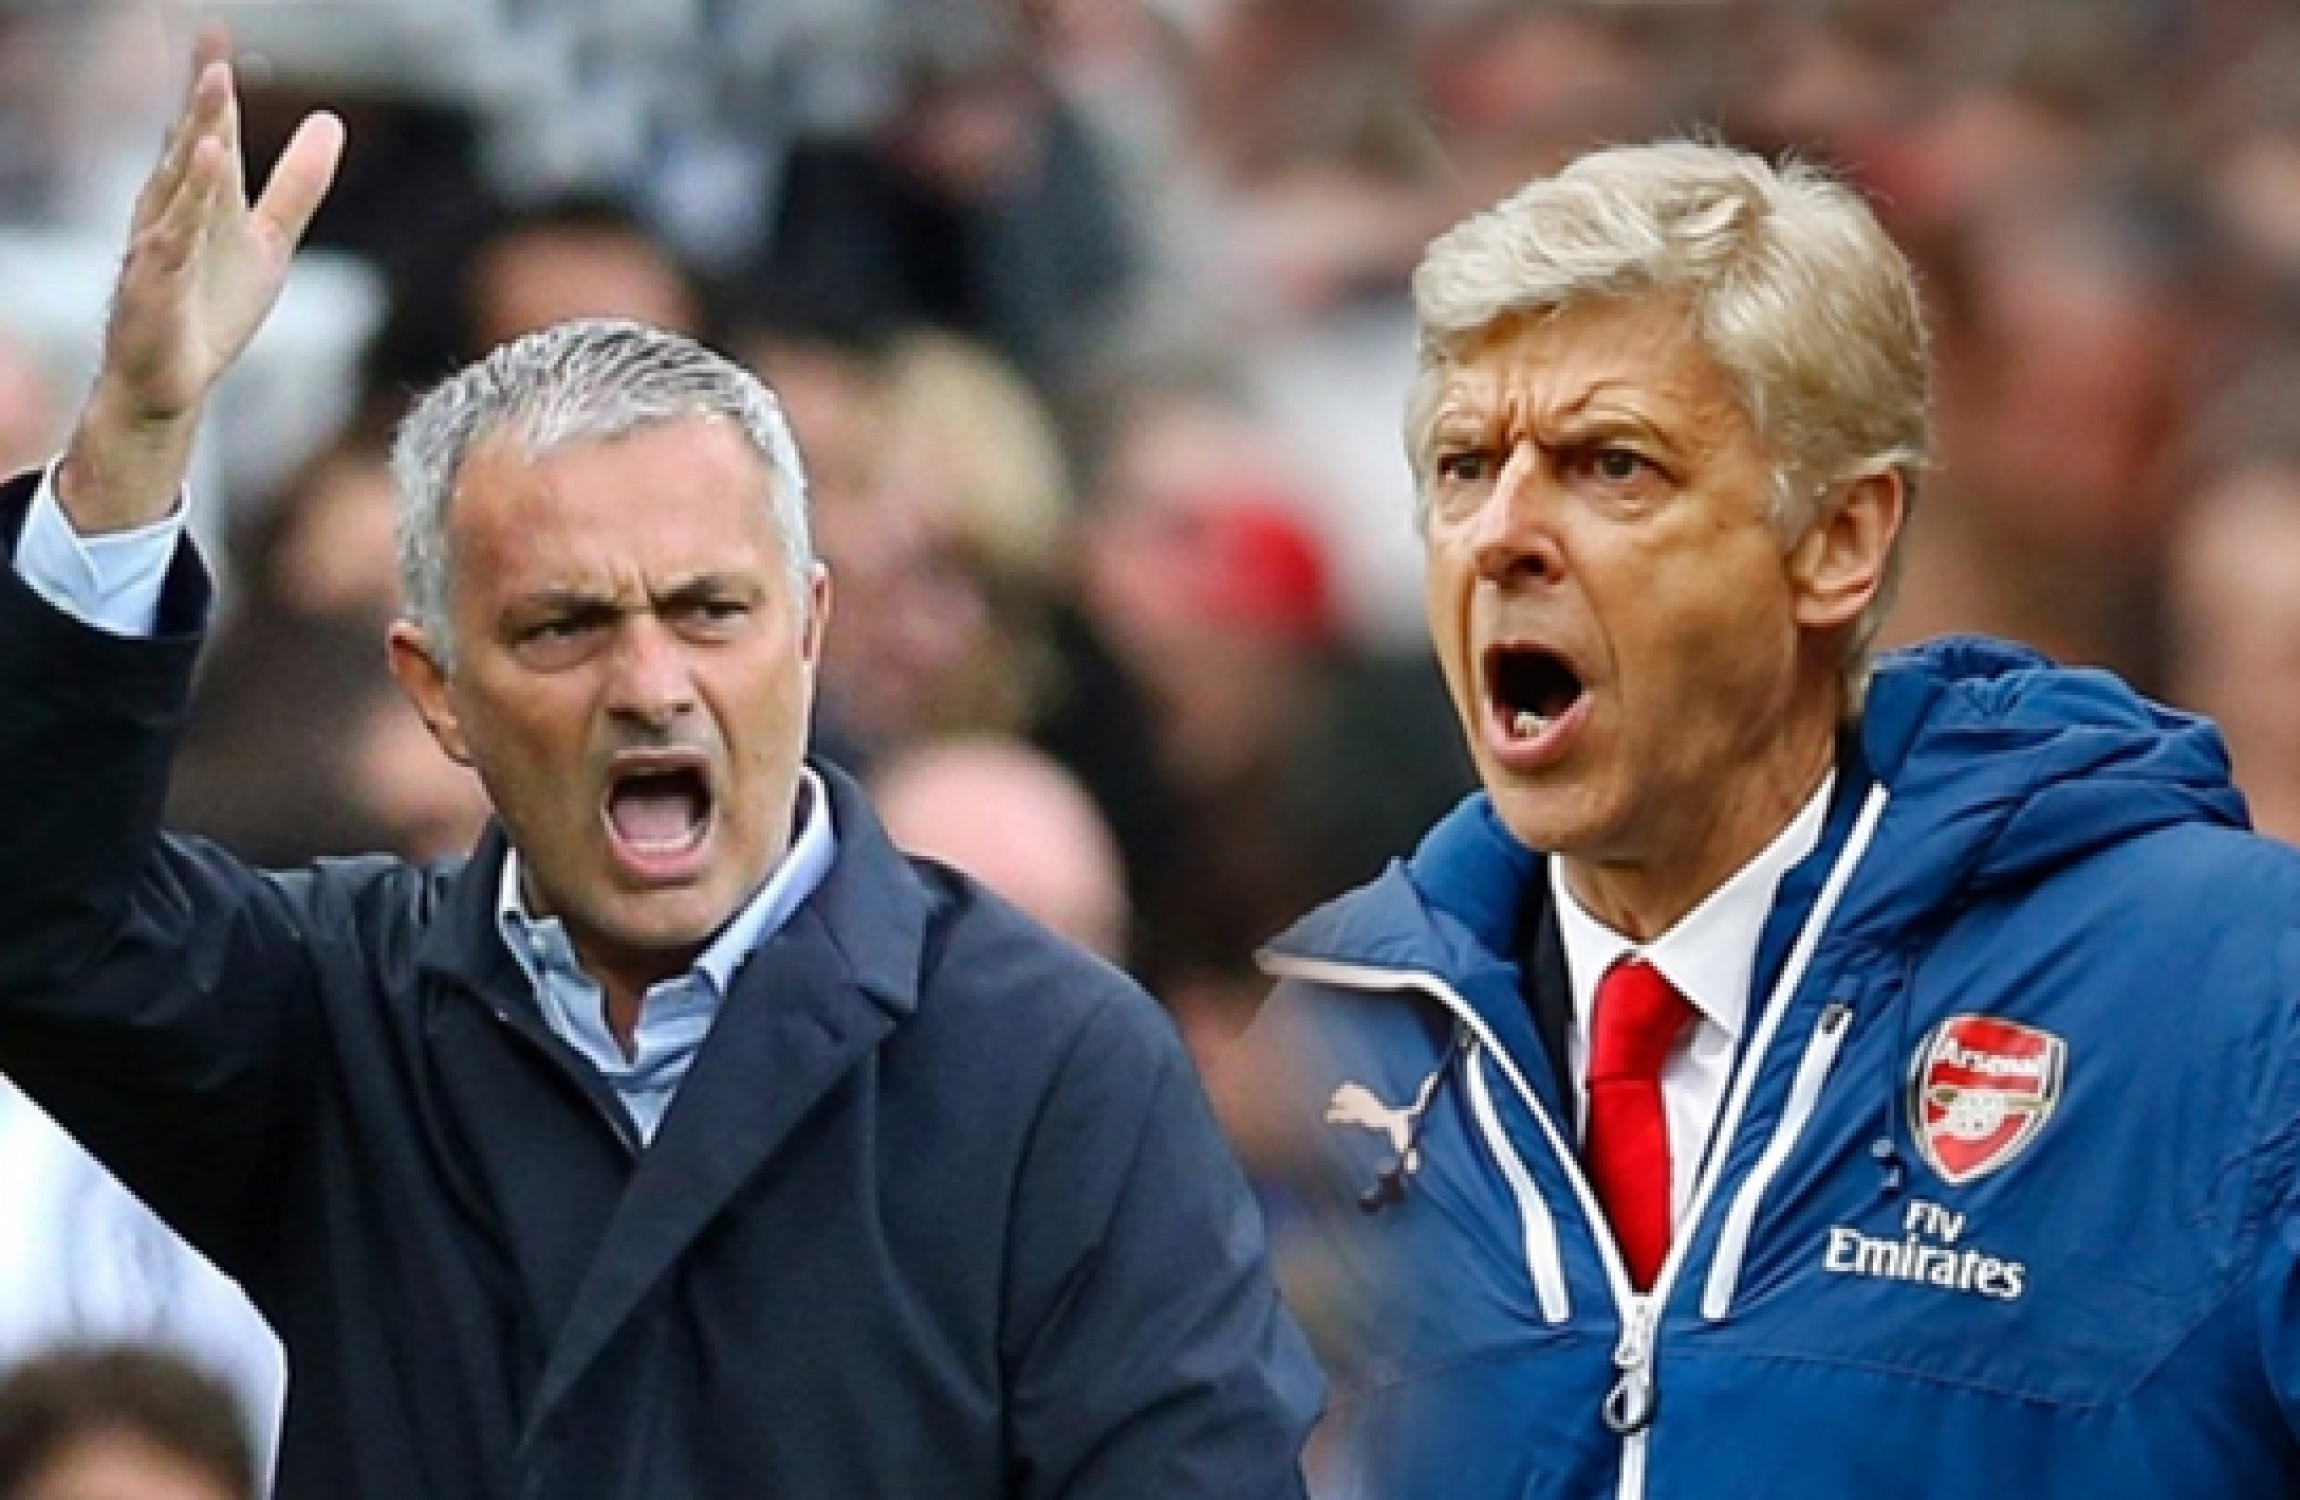 Mourinho takes serious shots at Arsenal boss Wenger